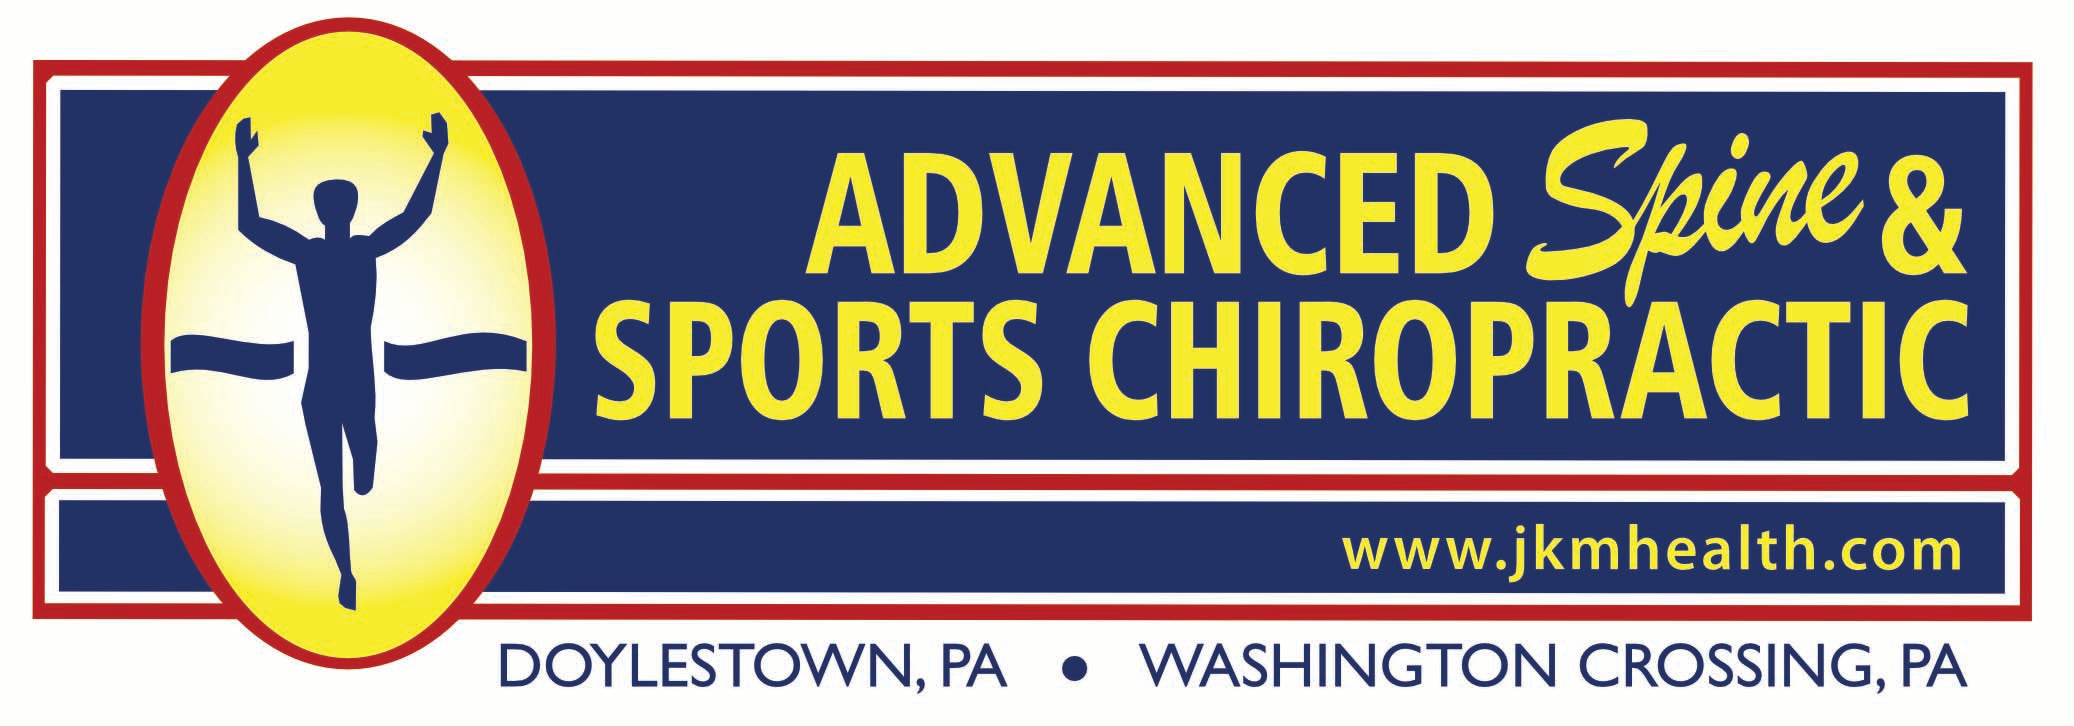 Advanced Spine & Sports Chiropractic